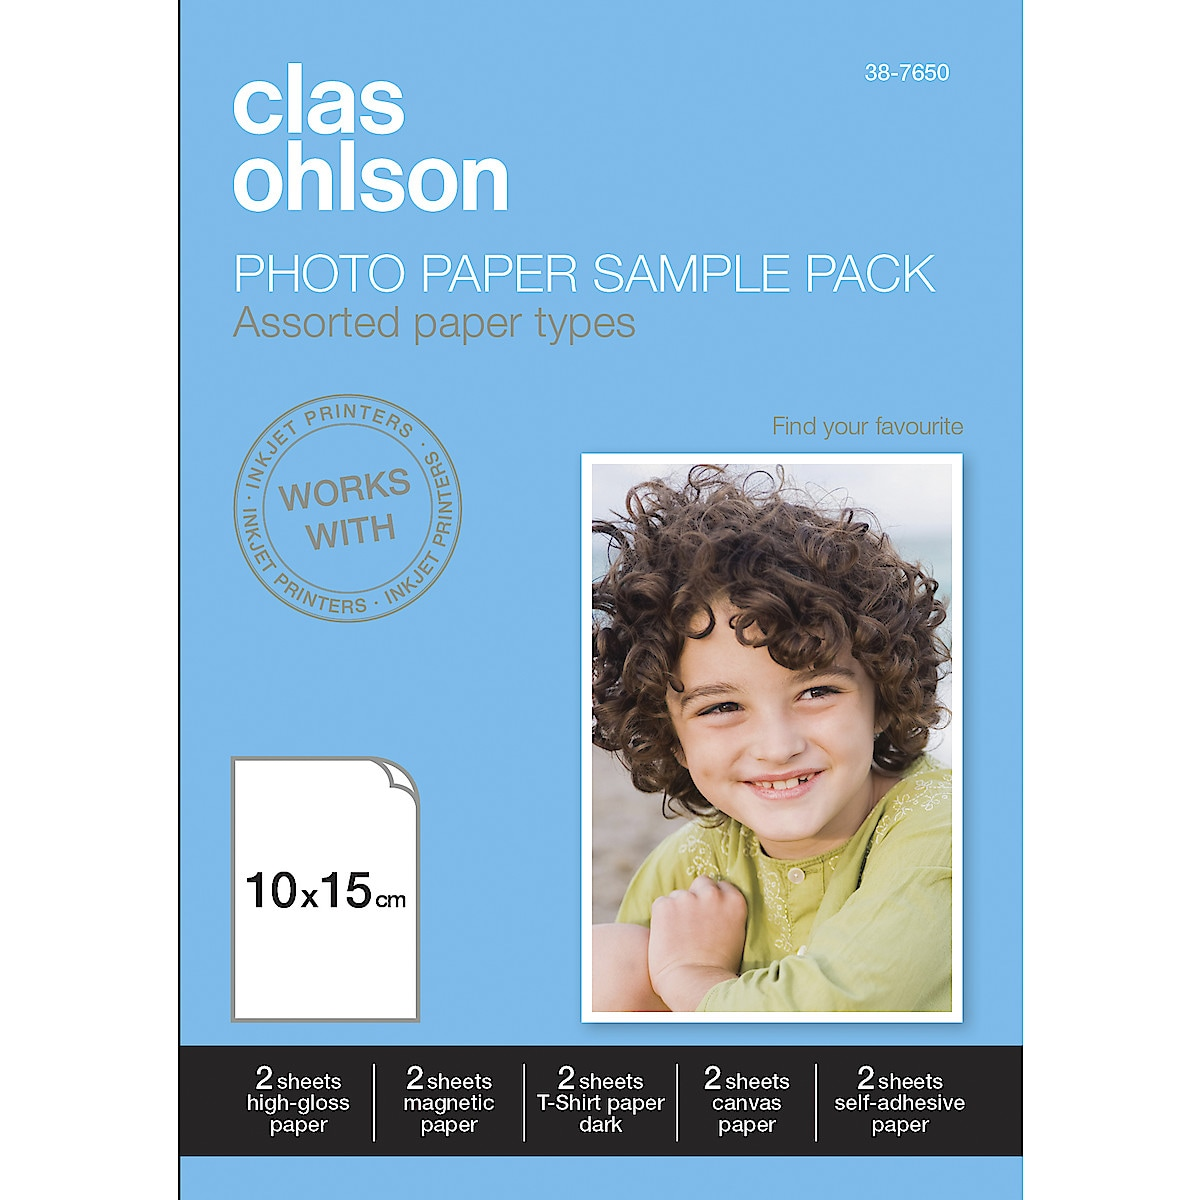 Clas Ohlson Photo Paper Package